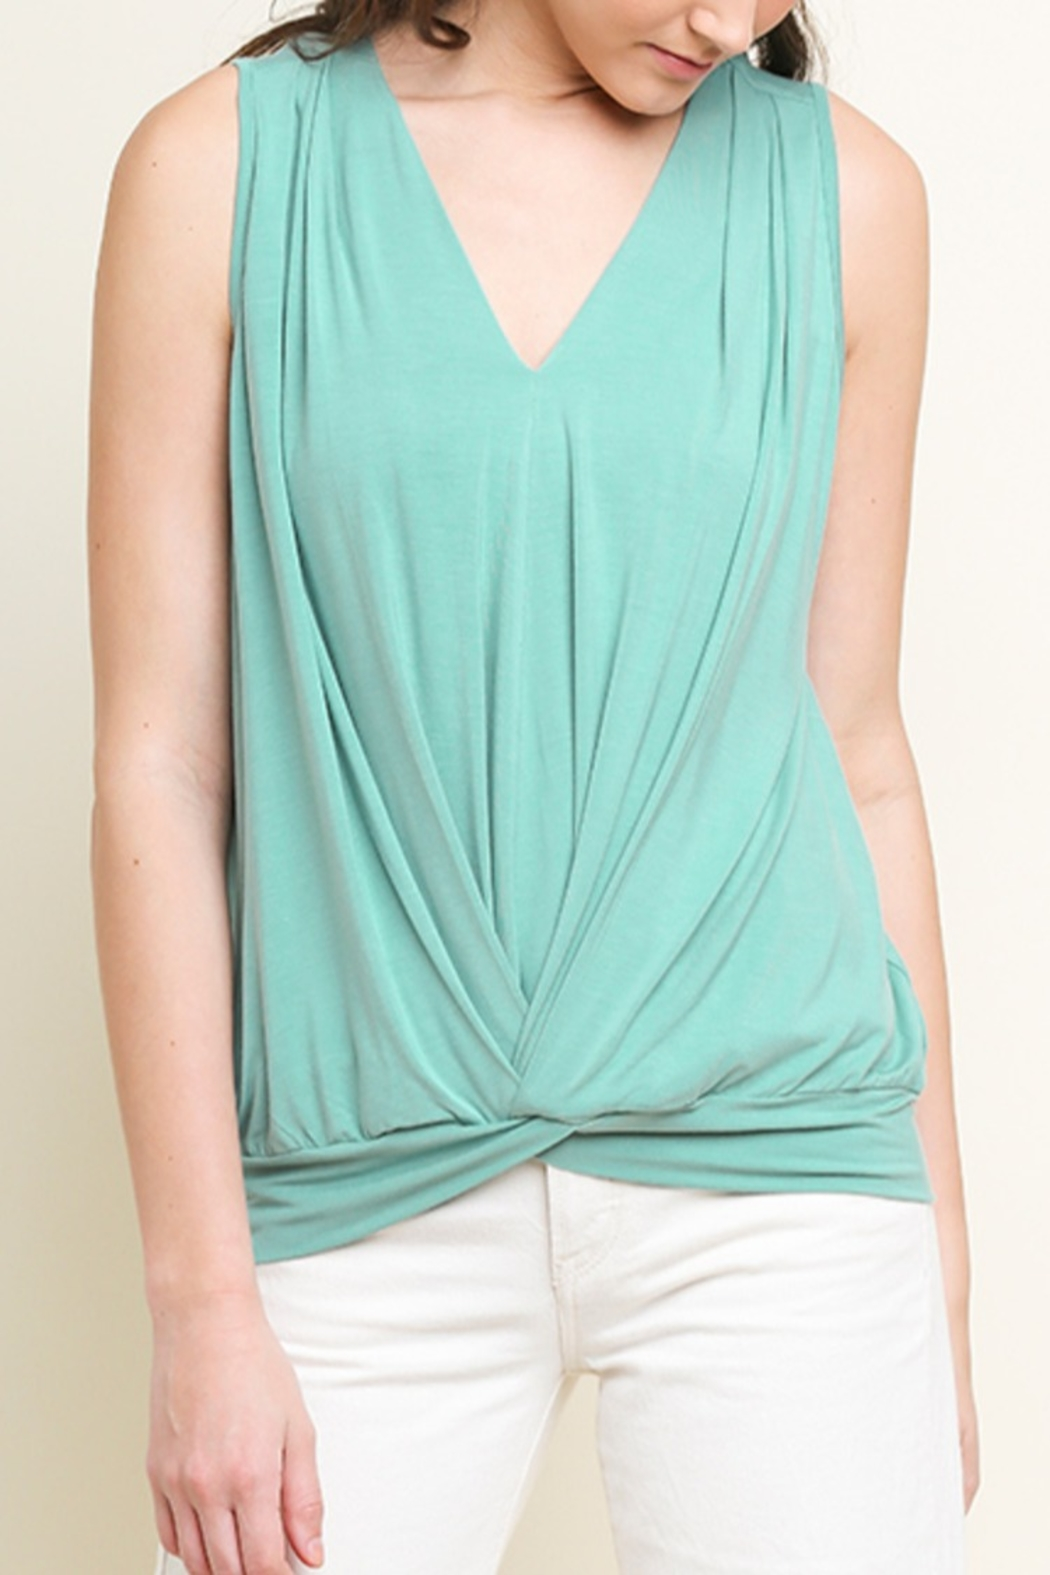 c95140bd6013 Umgee USA Beach Basic Top from Mississippi by Exit 16 - Diamondhead ...